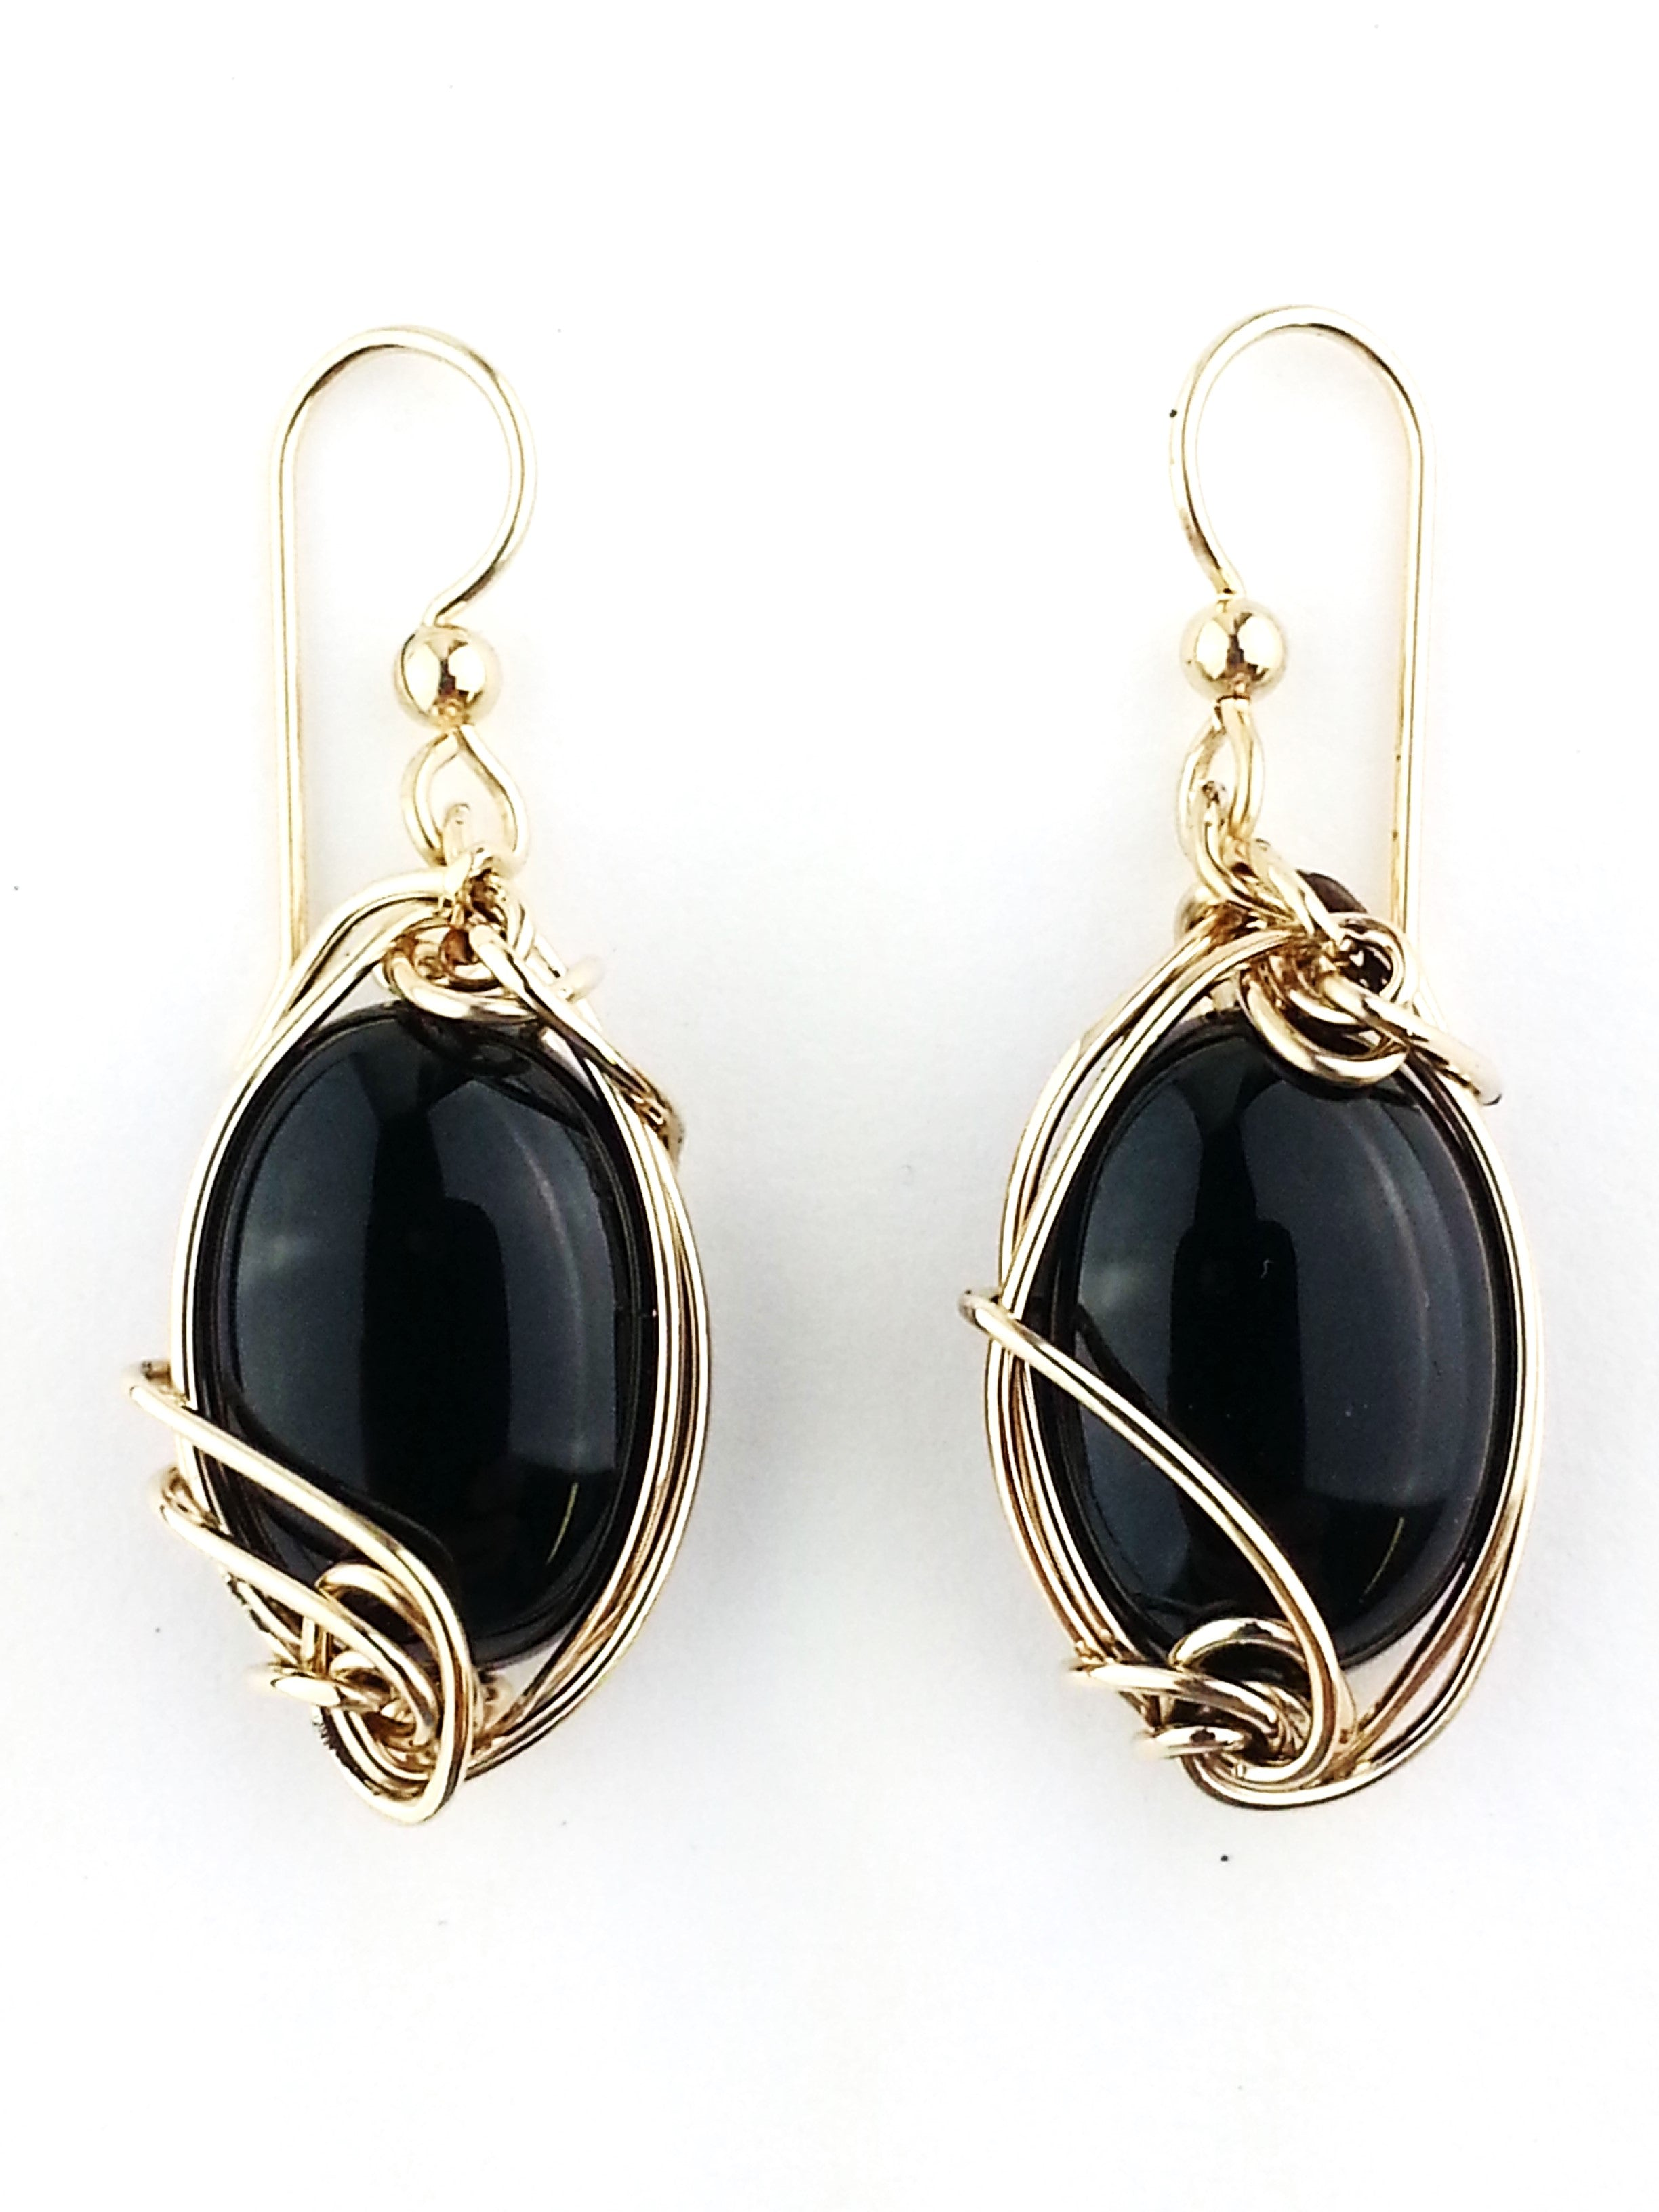 These Classic chic Black Onyx cabochon earrings contrast brilliantly when sculpted in 14kt gold filled (or Sterling Silver) wire and are a main staple that every woman's jewelry box simply should not be without.  Handcrafted in Minnesota, USA with the finest quality materials in my studio.